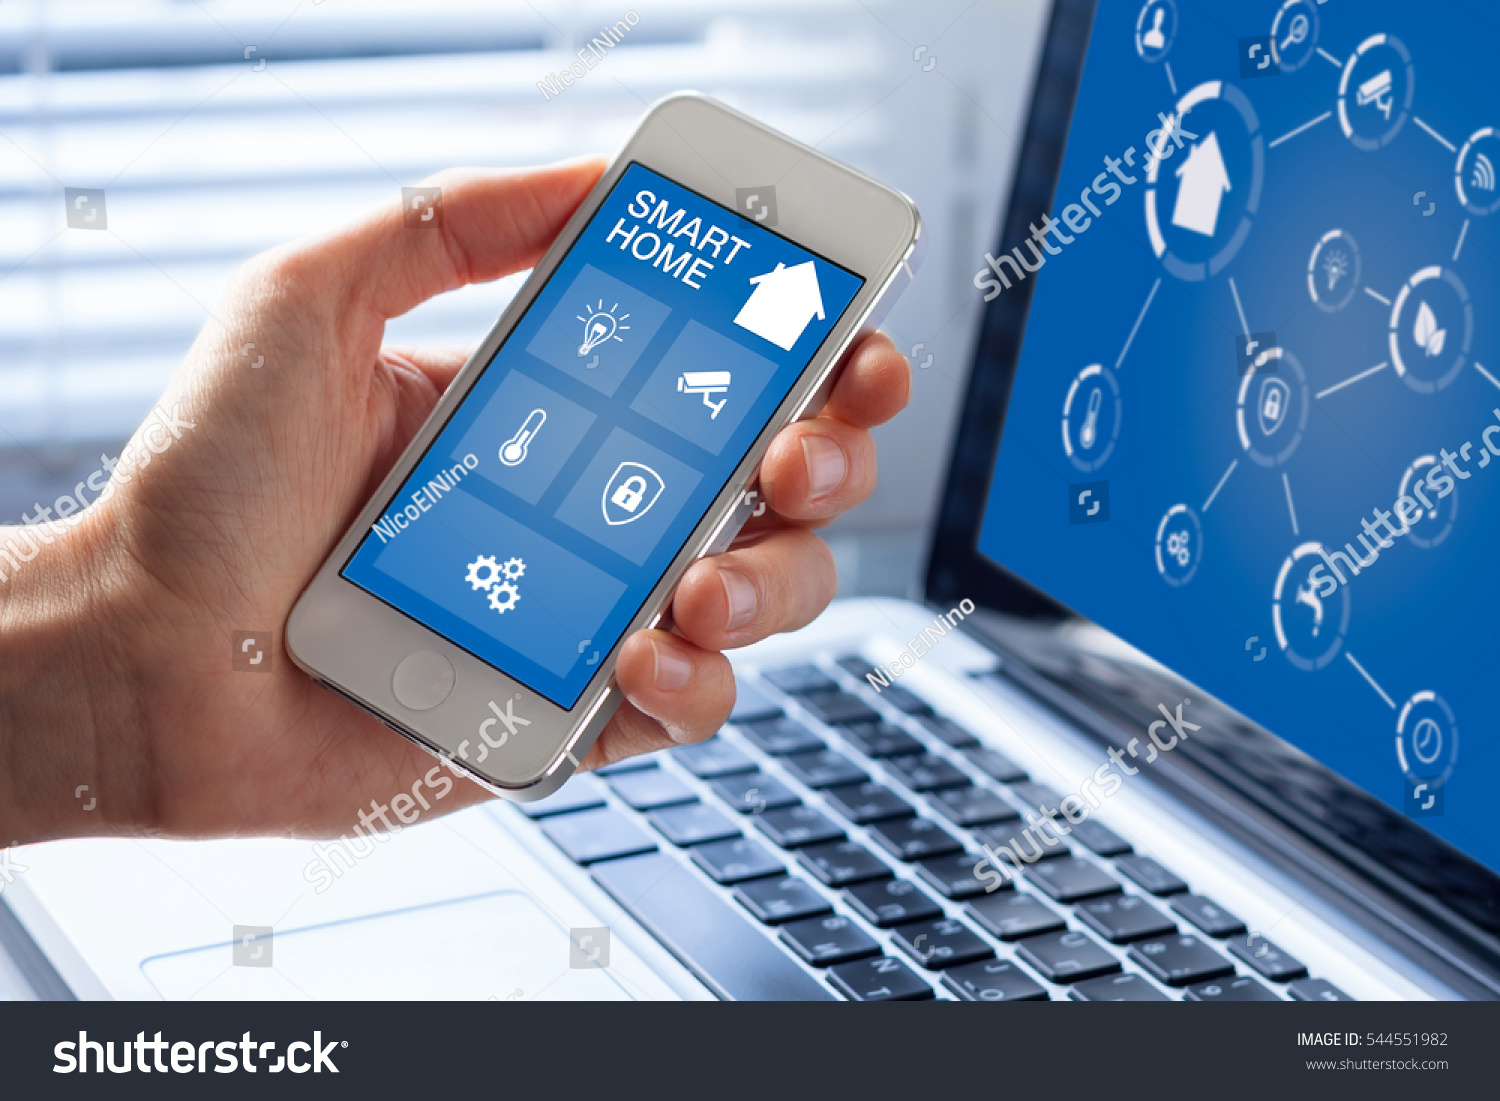 smart home automation app interface on stock photo 544551982 shutterstock. Black Bedroom Furniture Sets. Home Design Ideas